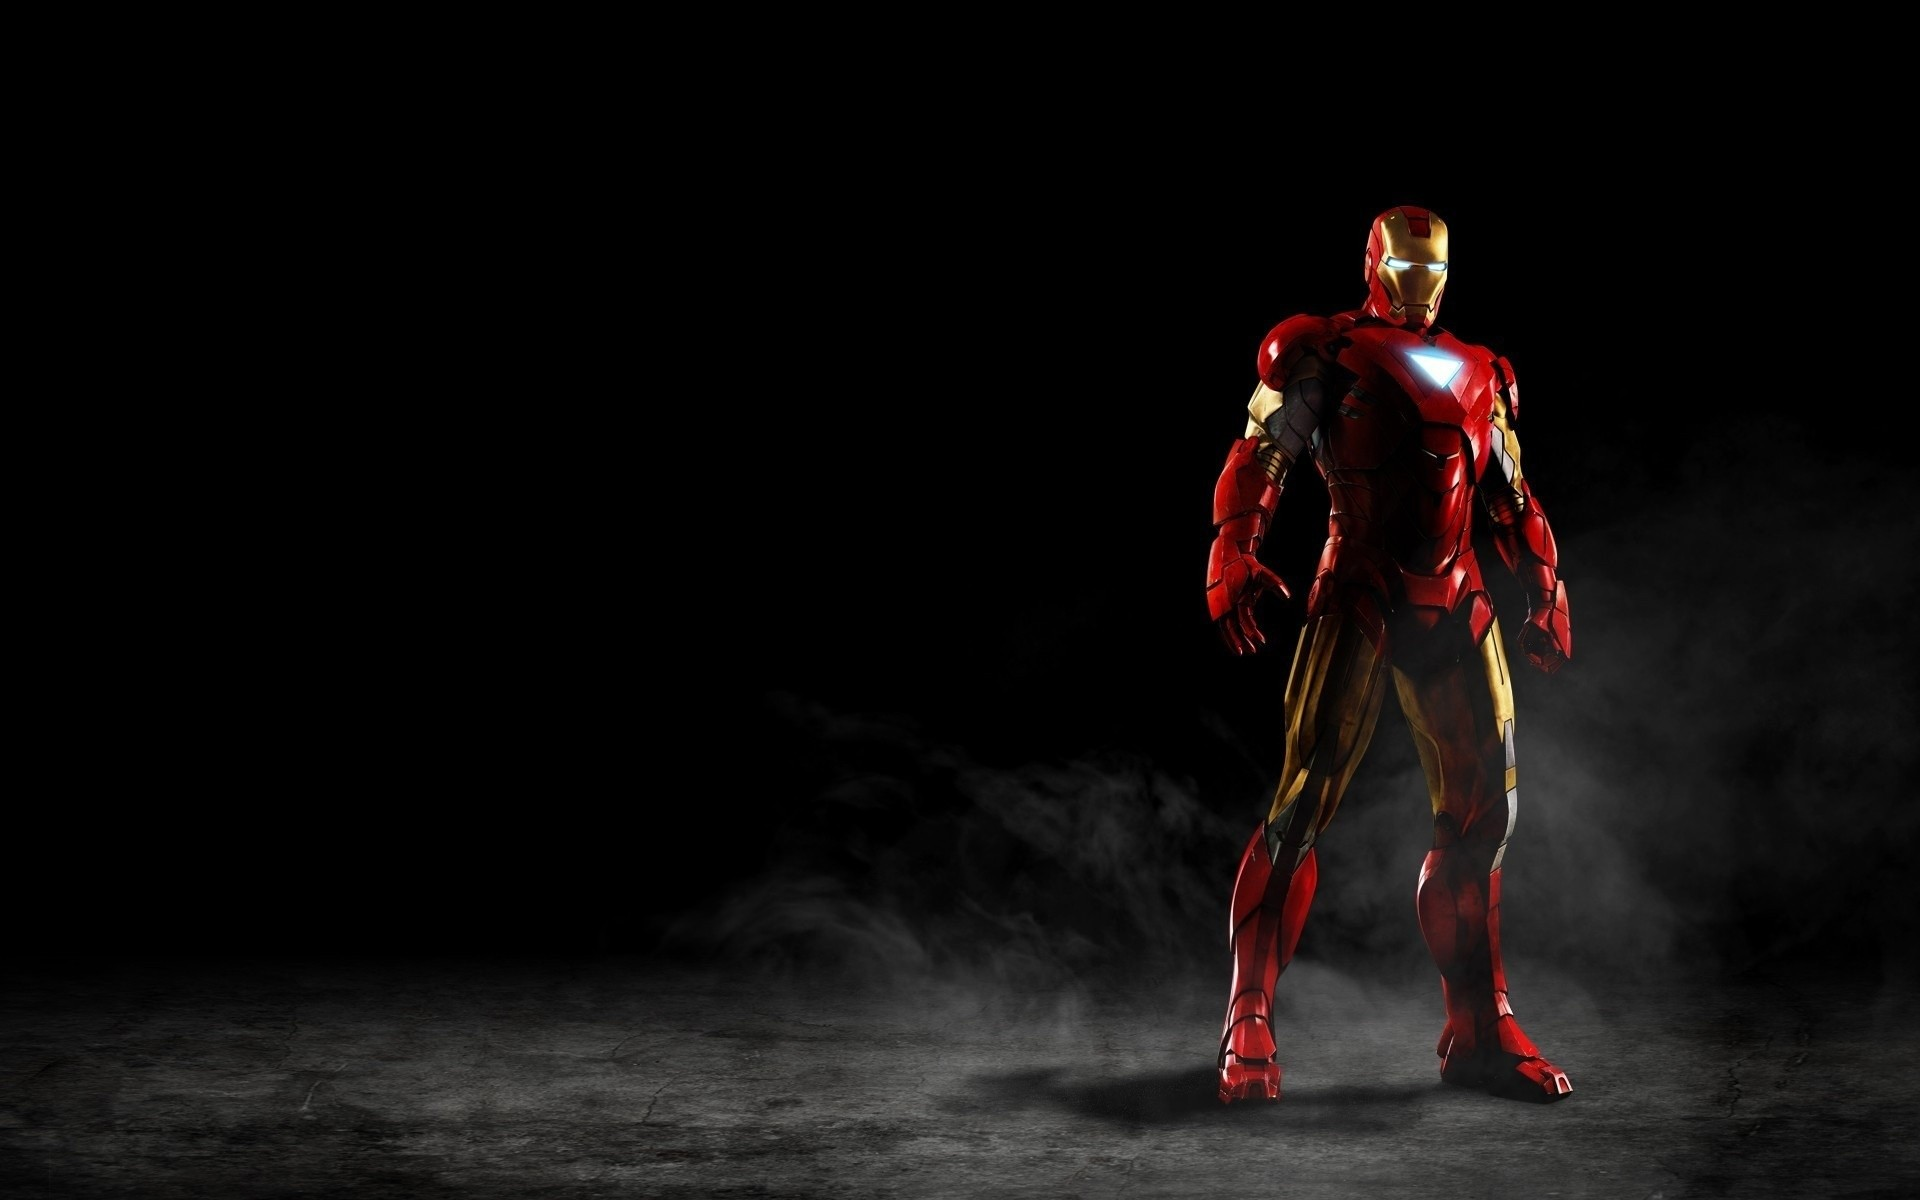 Top 10 3d Wallpapers For Android Amazing Iron Man Wallpapers Hd Wallpapers Id 10440